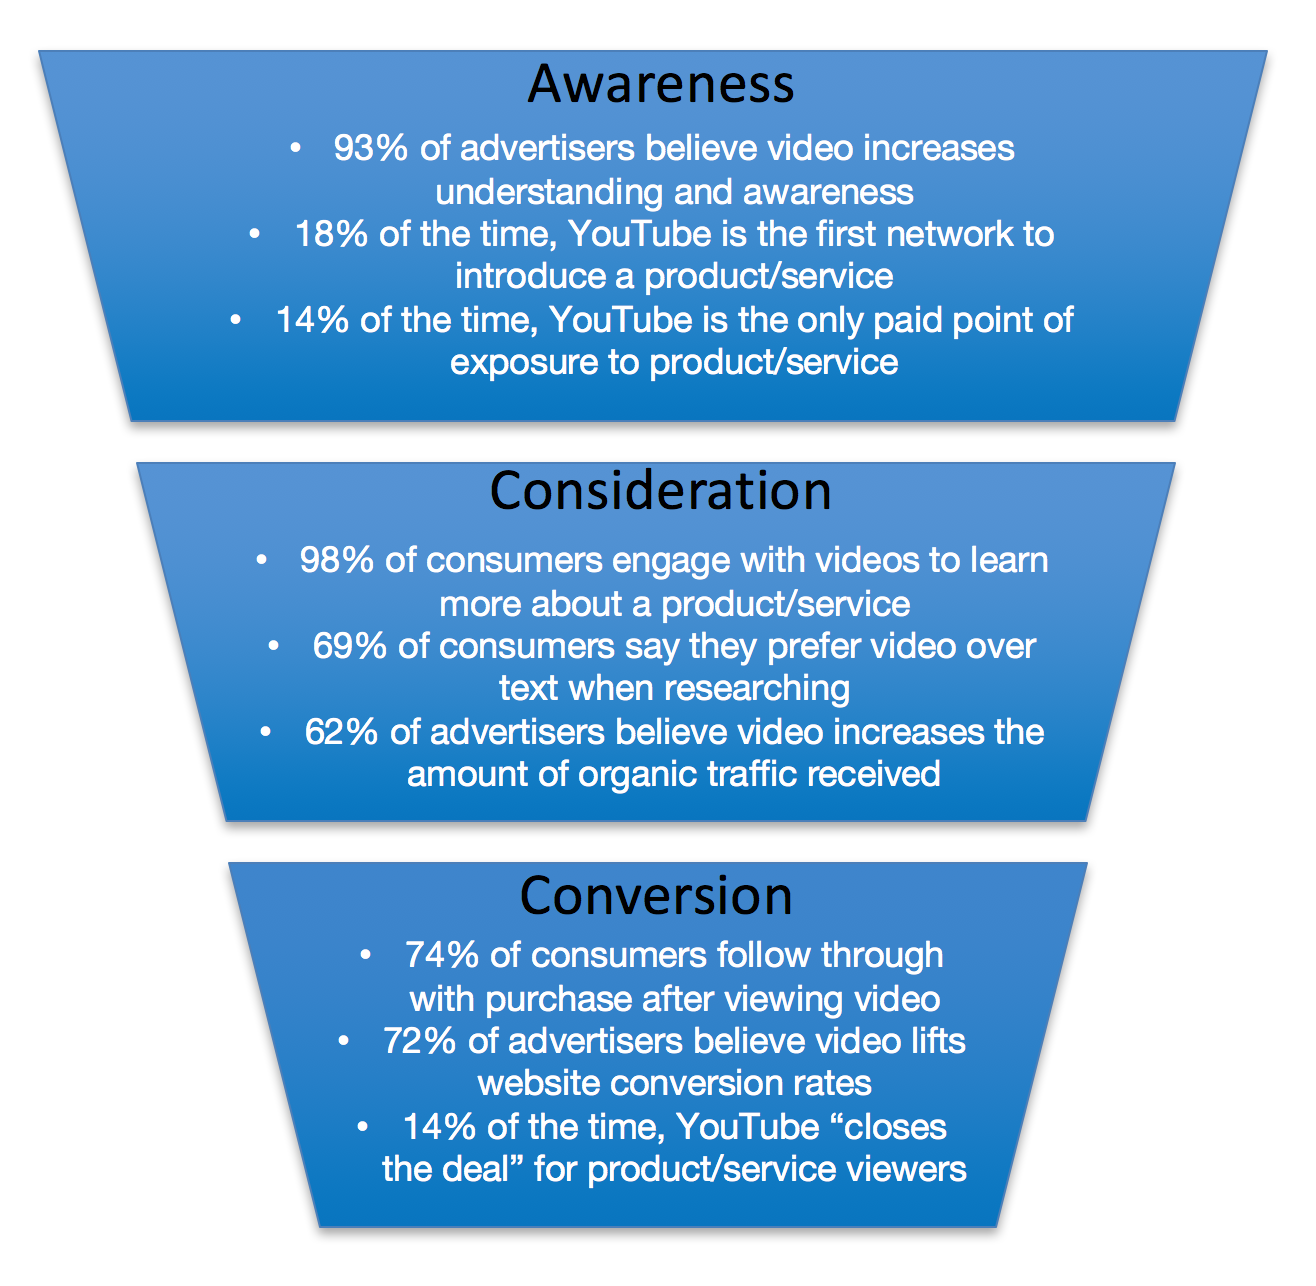 YouTube can be an active player in all stages of the conversion funnel or buyer journey